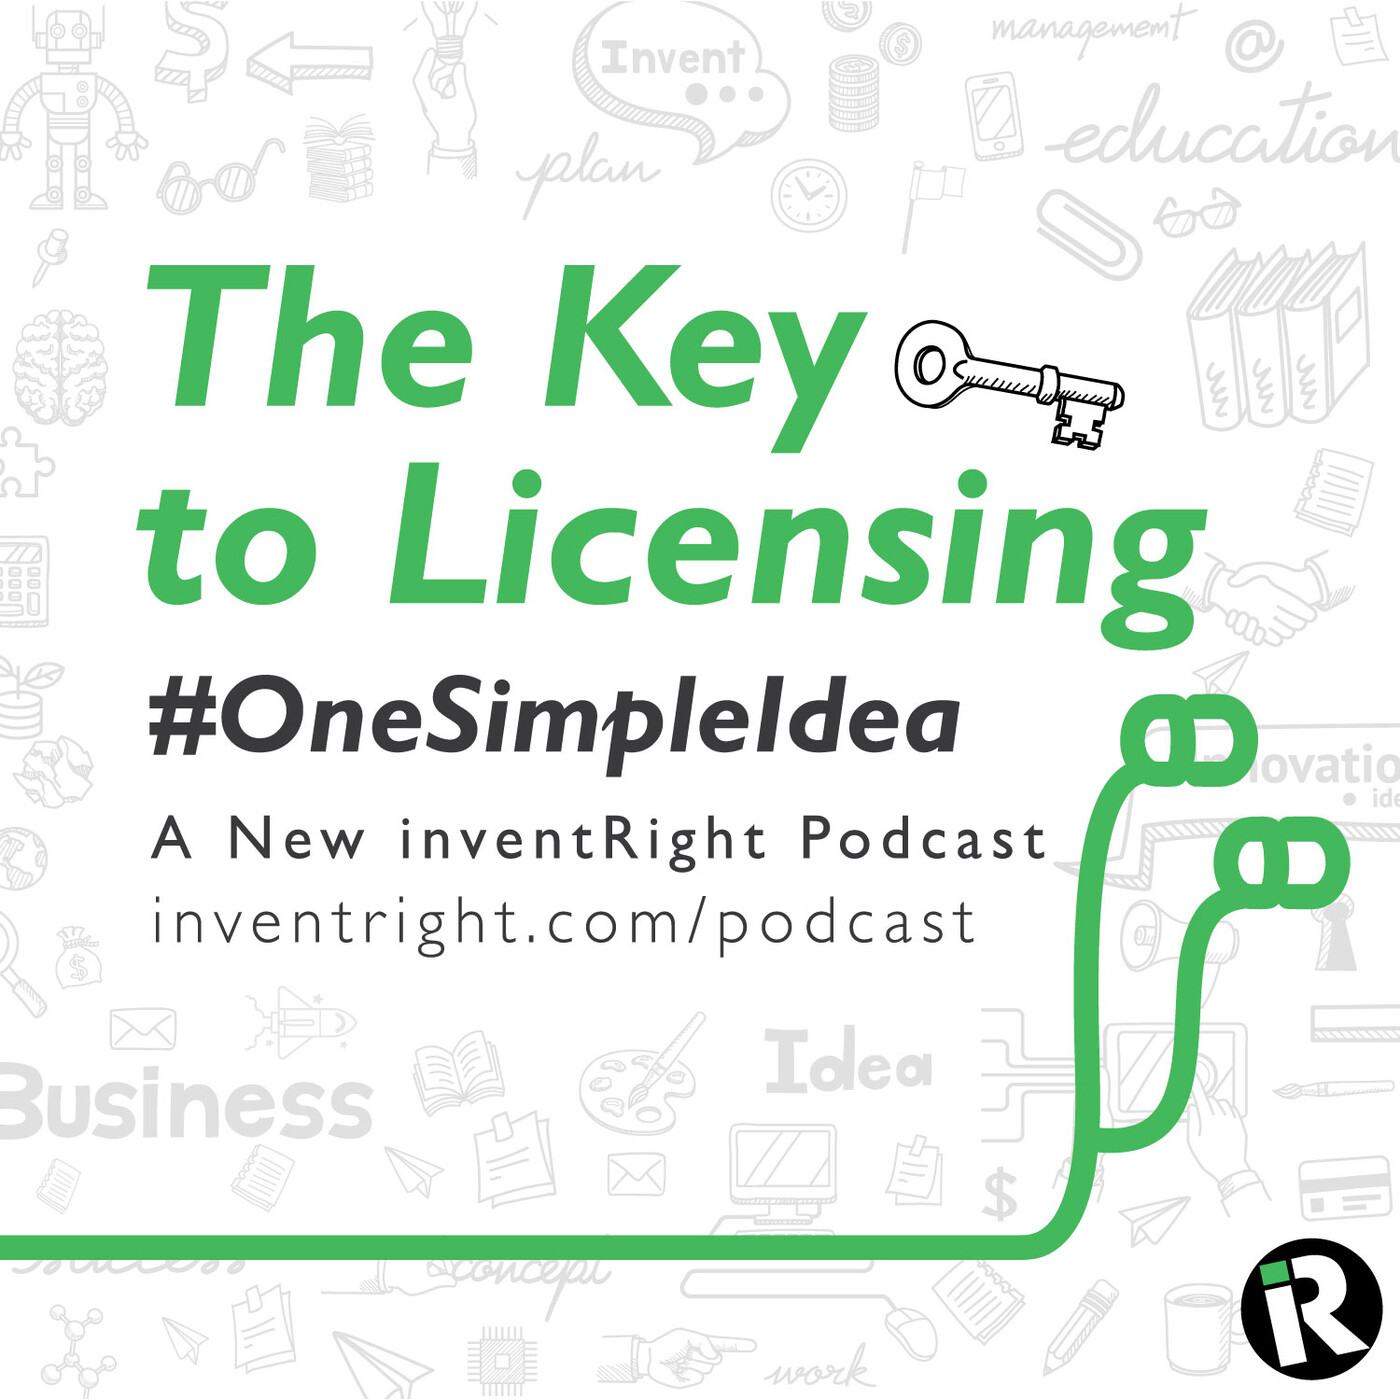 The Key To Licensing - Episode 3 - Featuring inventRight Coach Terry O'Mara